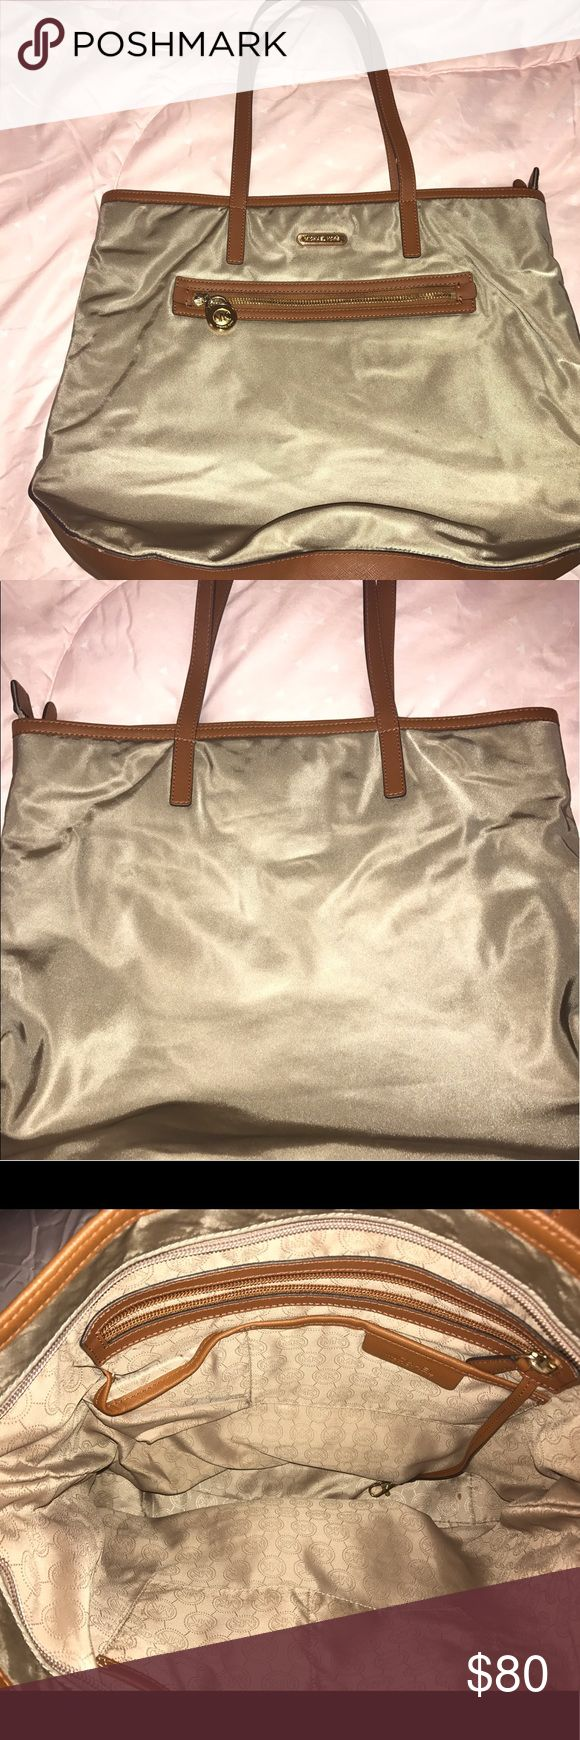 Michael kors purse Fair condition, inside looks good, outside looks good----make me an offer Michael Kors Bags